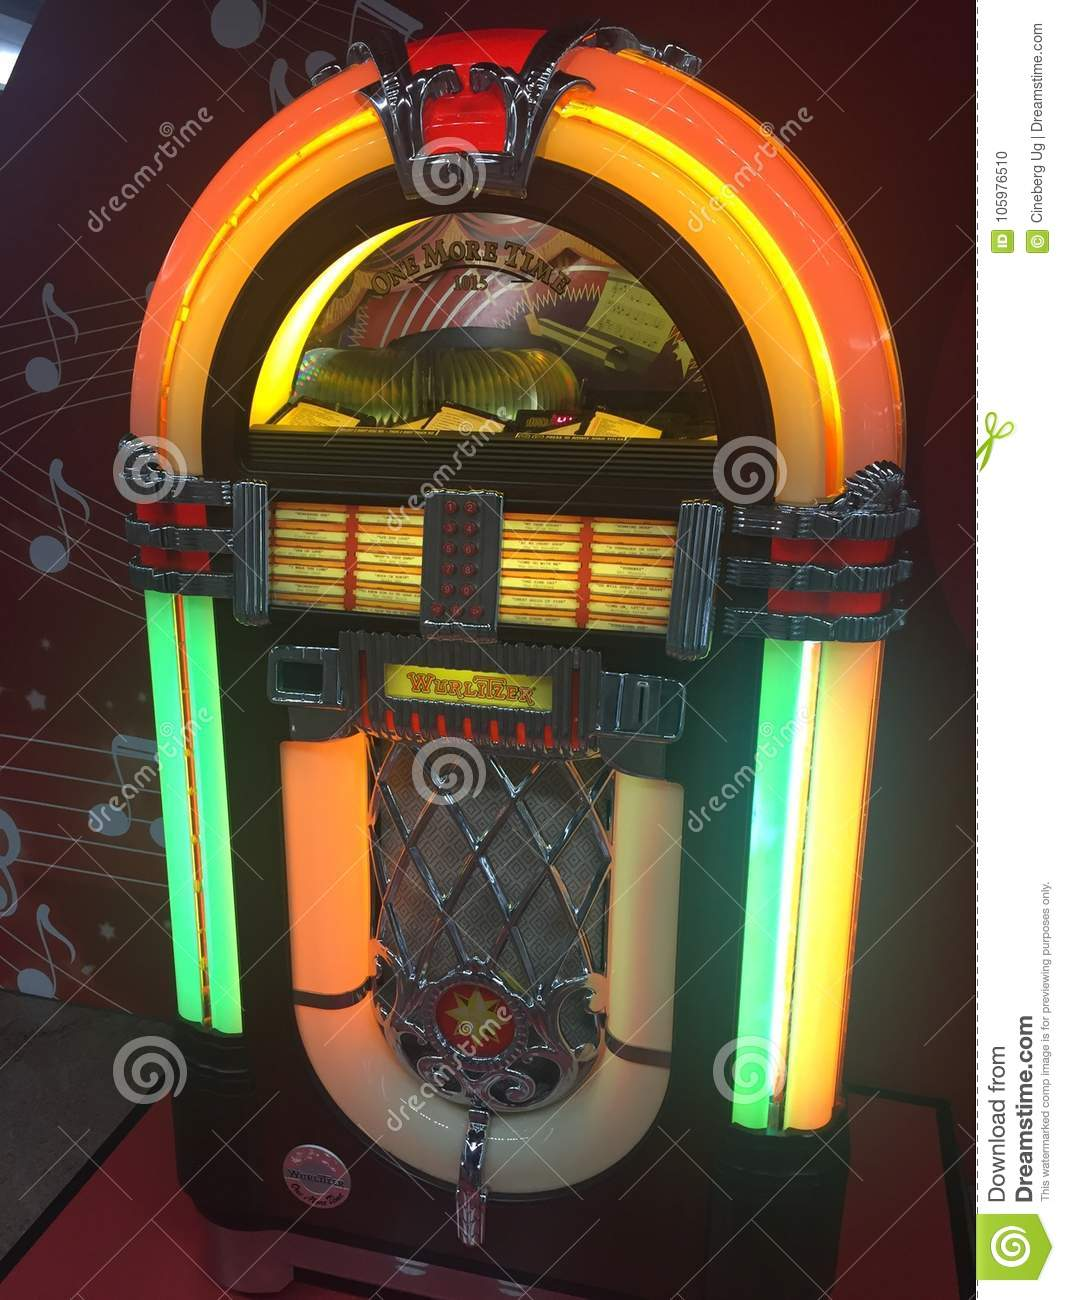 Old Wurlitzer Jukebox editorial image  Image of media - 105976510